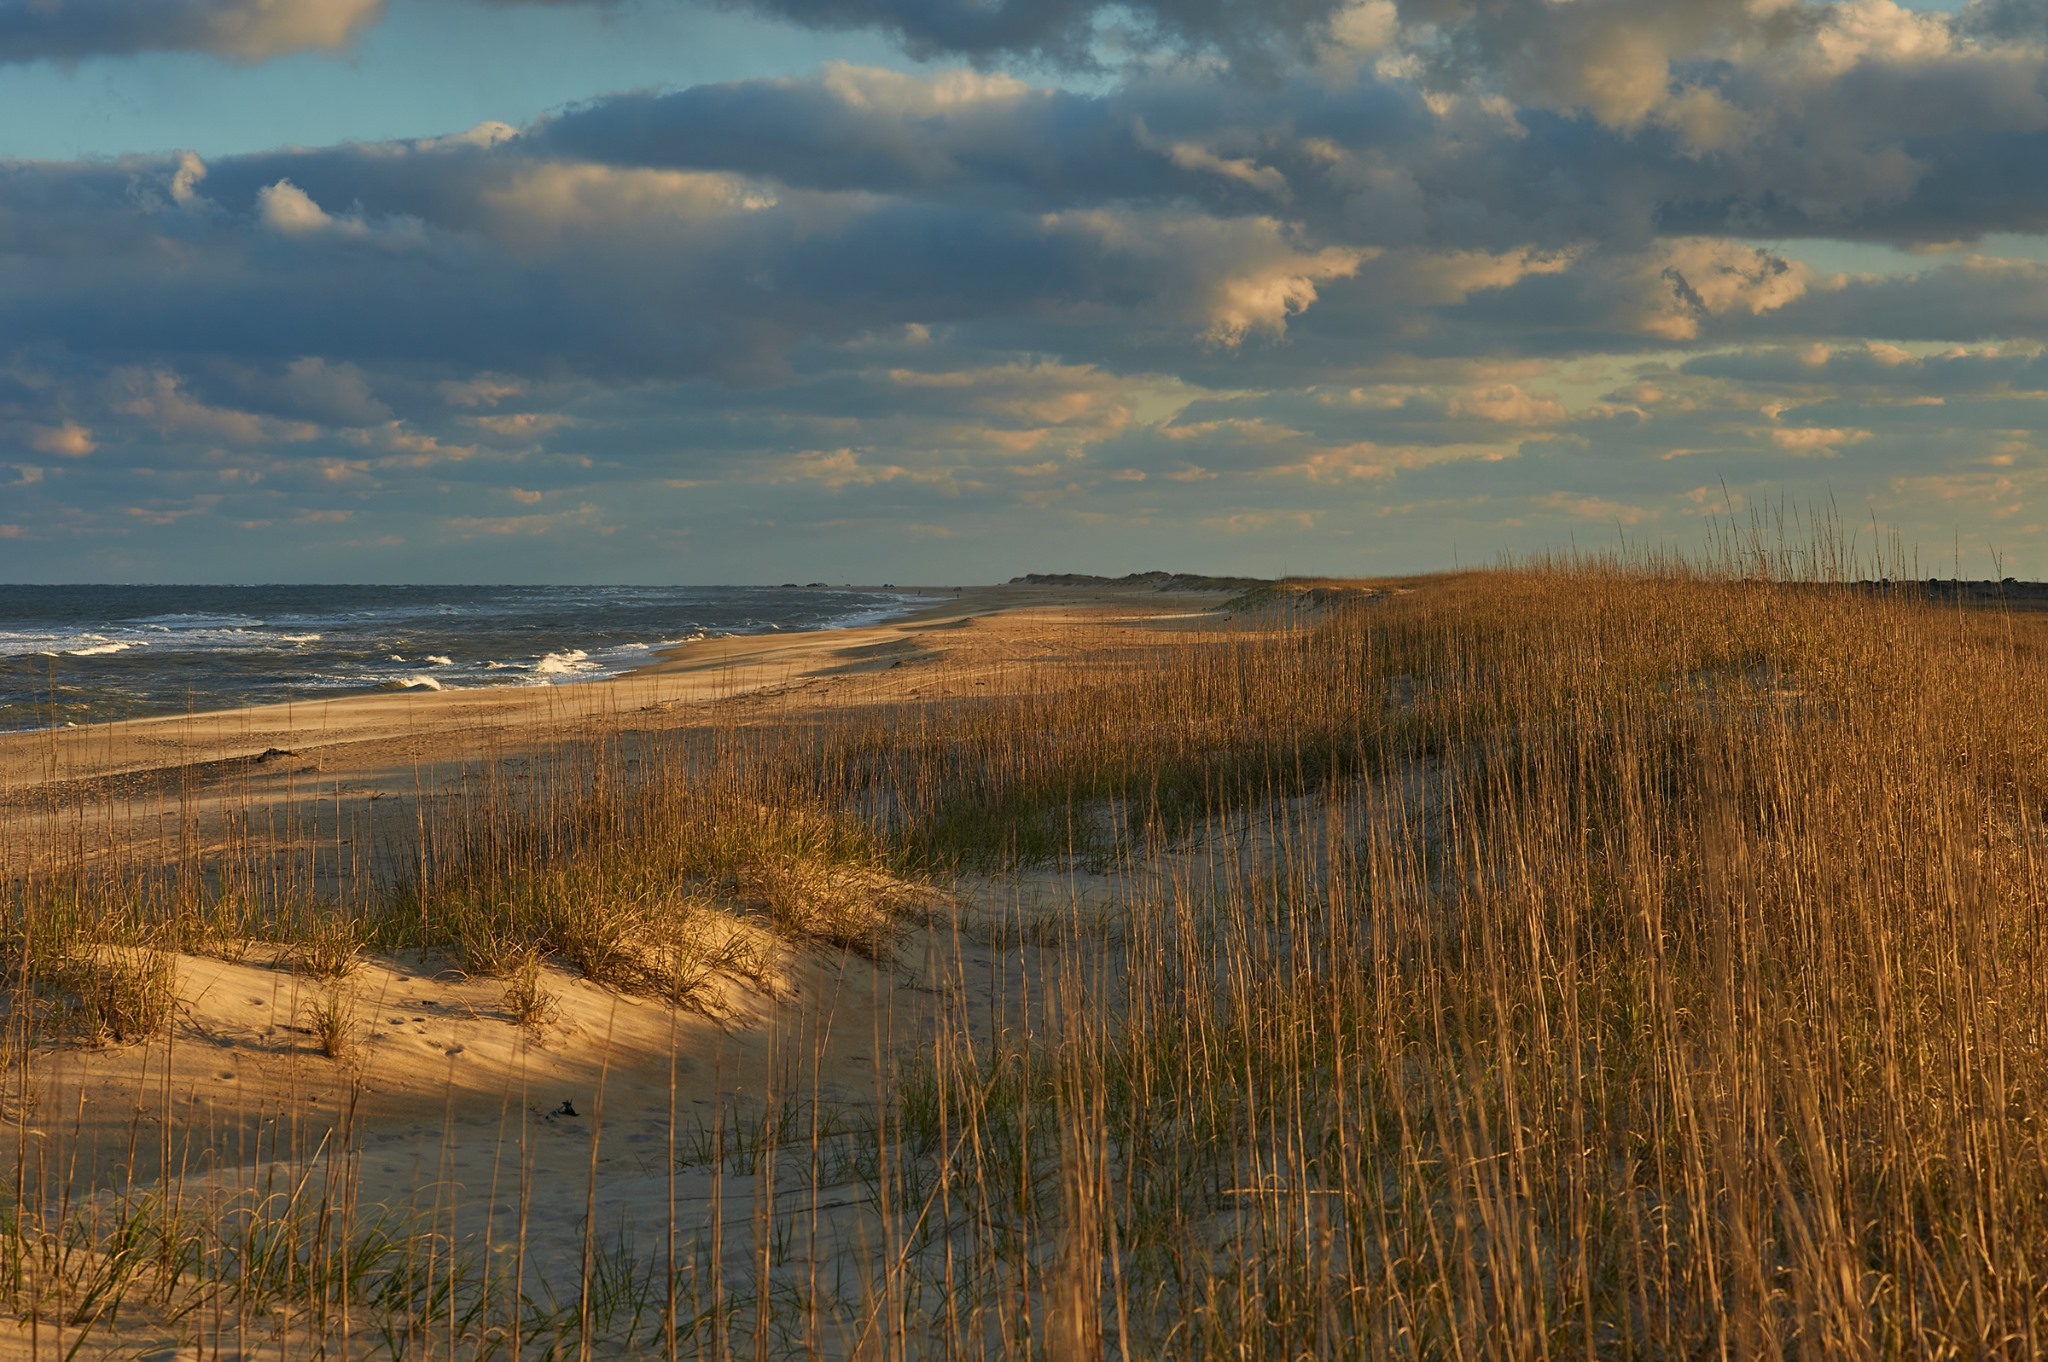 A photograph of Cape Hatteras National Seashore in golden light at sunset. Tan and brown sea oats and sand are in the foreground. The teal ocean is in the background. White puffy clouds dot the blue sky above.